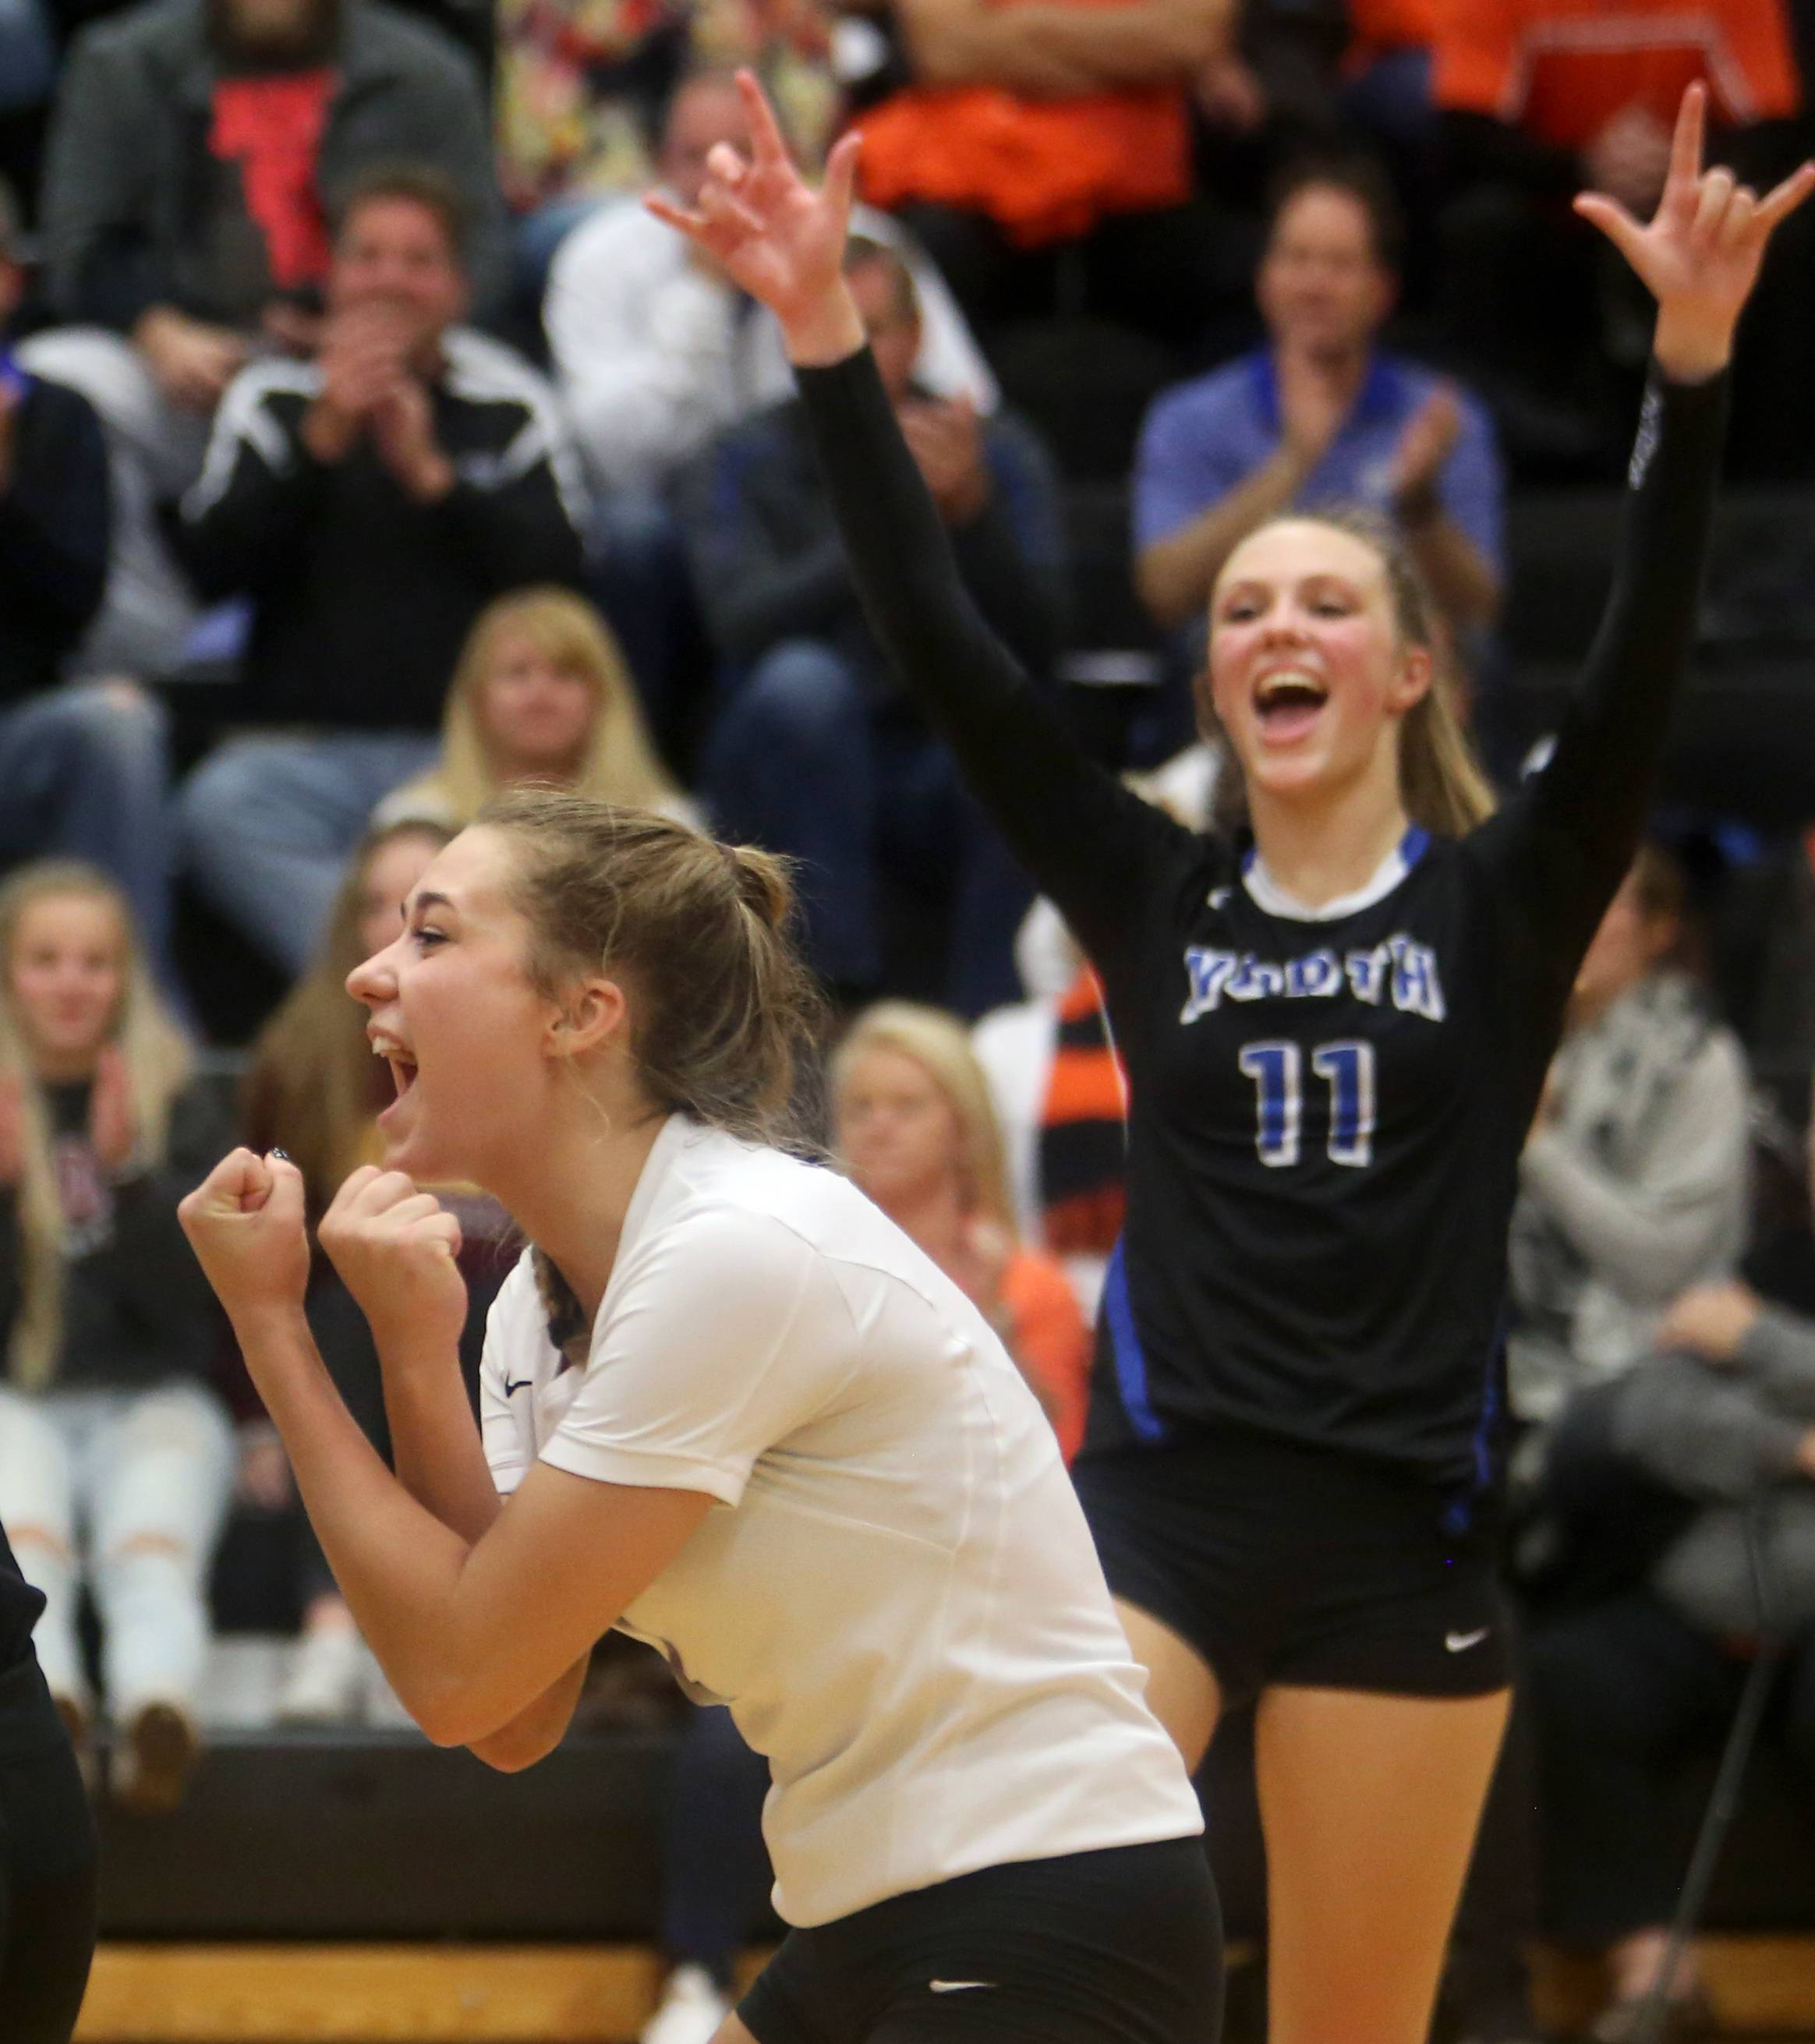 Lauren Caprini, left, and Katie Lanz have helped St. Charles North win 22 straight matches and reach the state tournament for the first time.